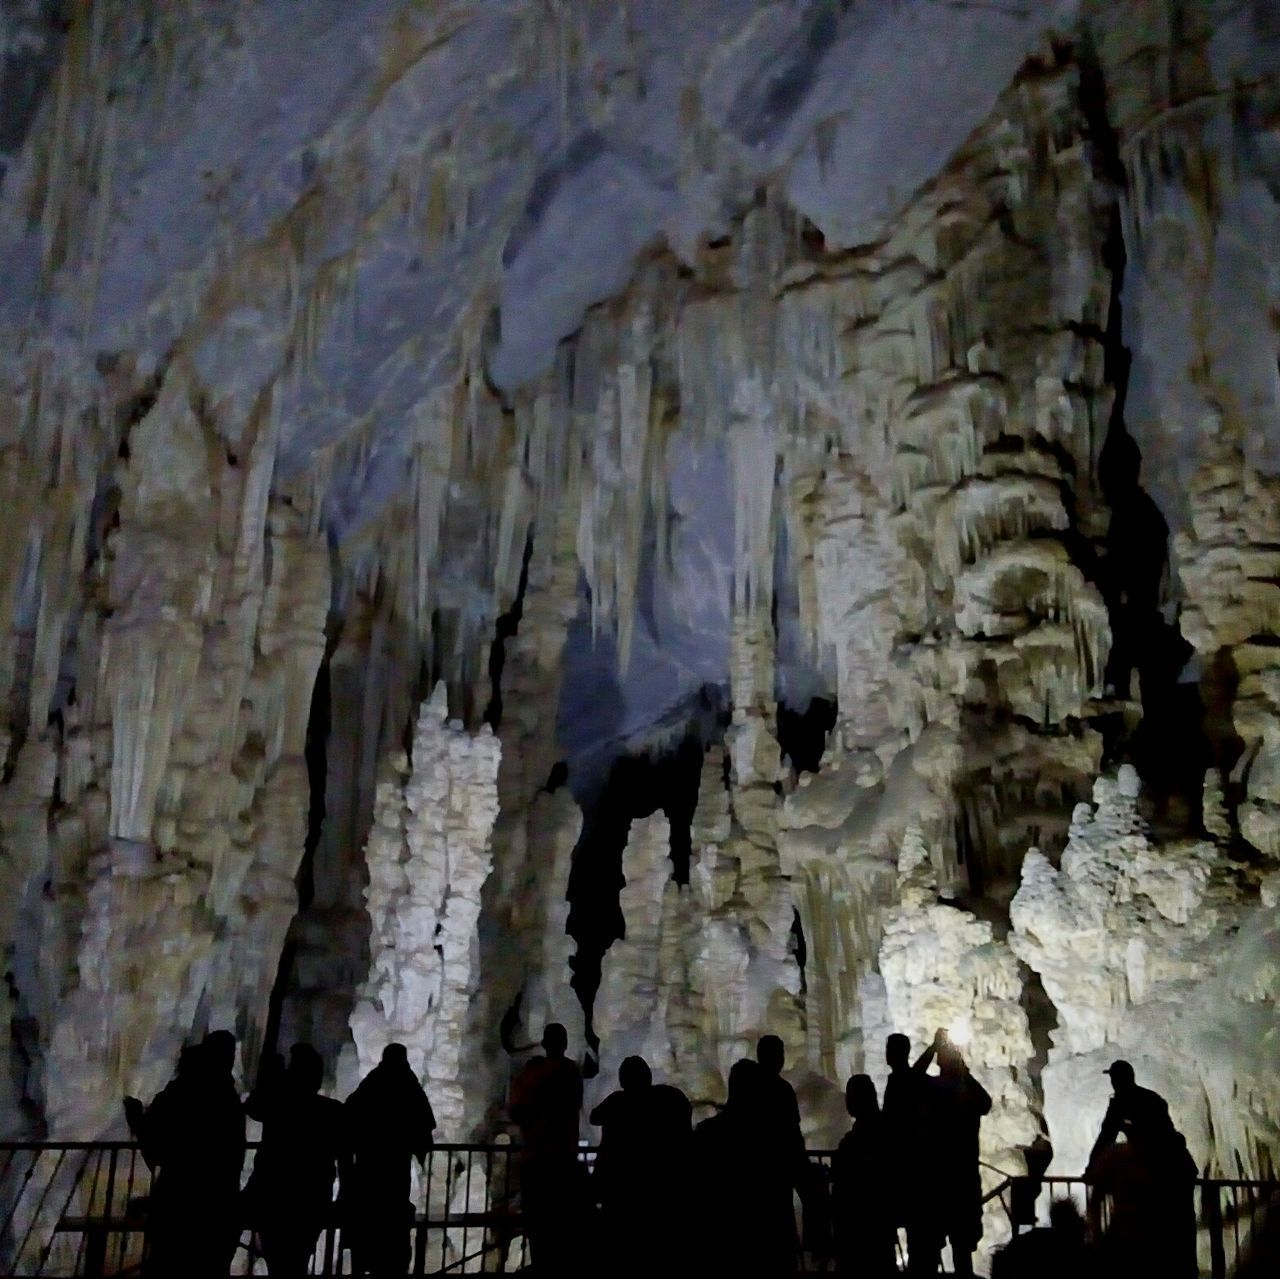 rock formation, cave, stalactite, rock - object, geology, physical geography, nature, real people, beauty in nature, textured, indoors, leisure activity, silhouette, low angle view, water, day